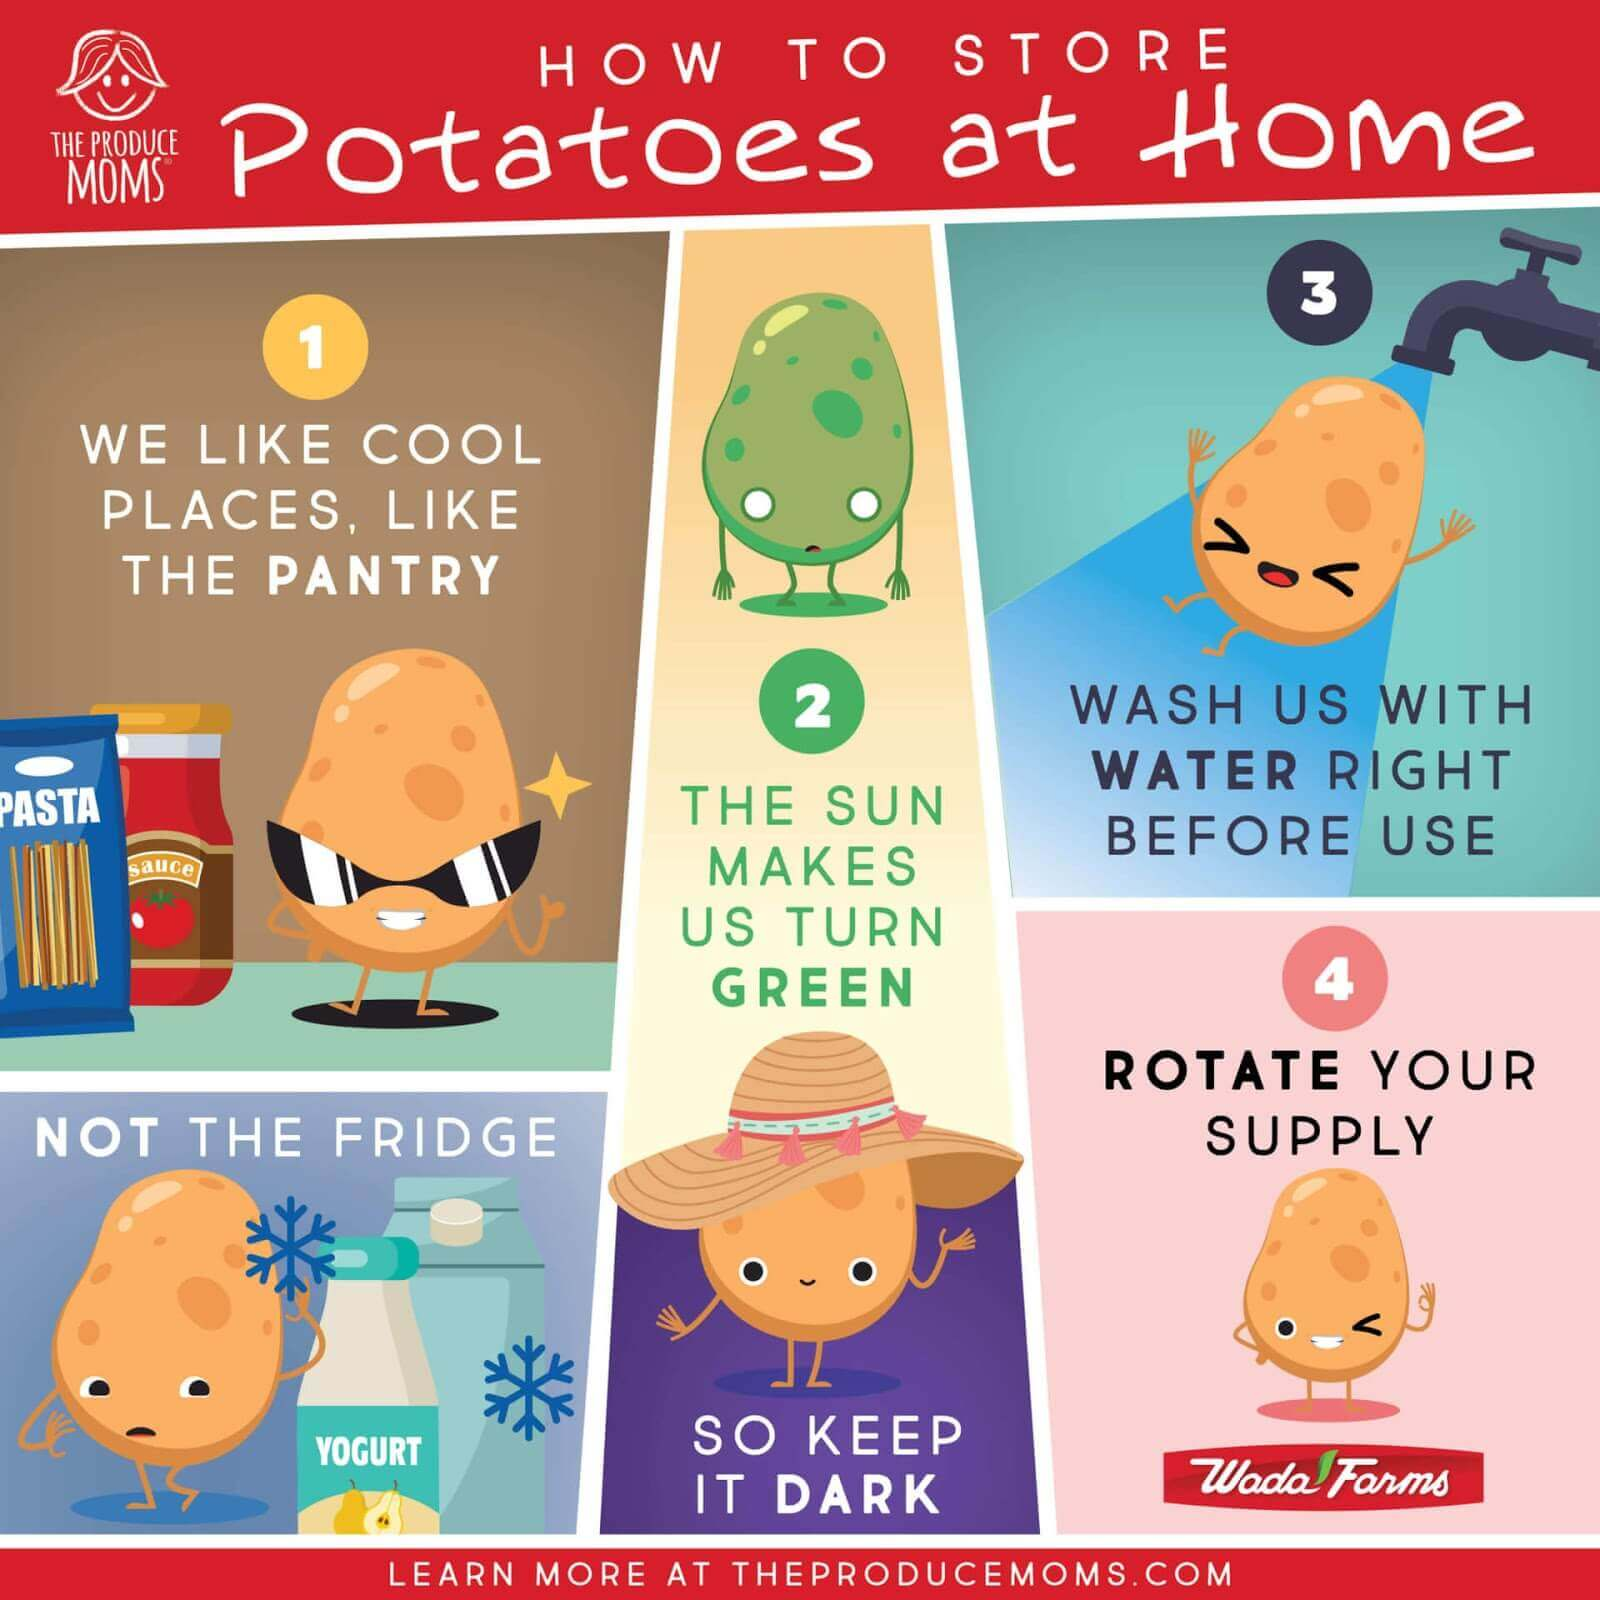 Nutritious Potato Recipes - How To Store